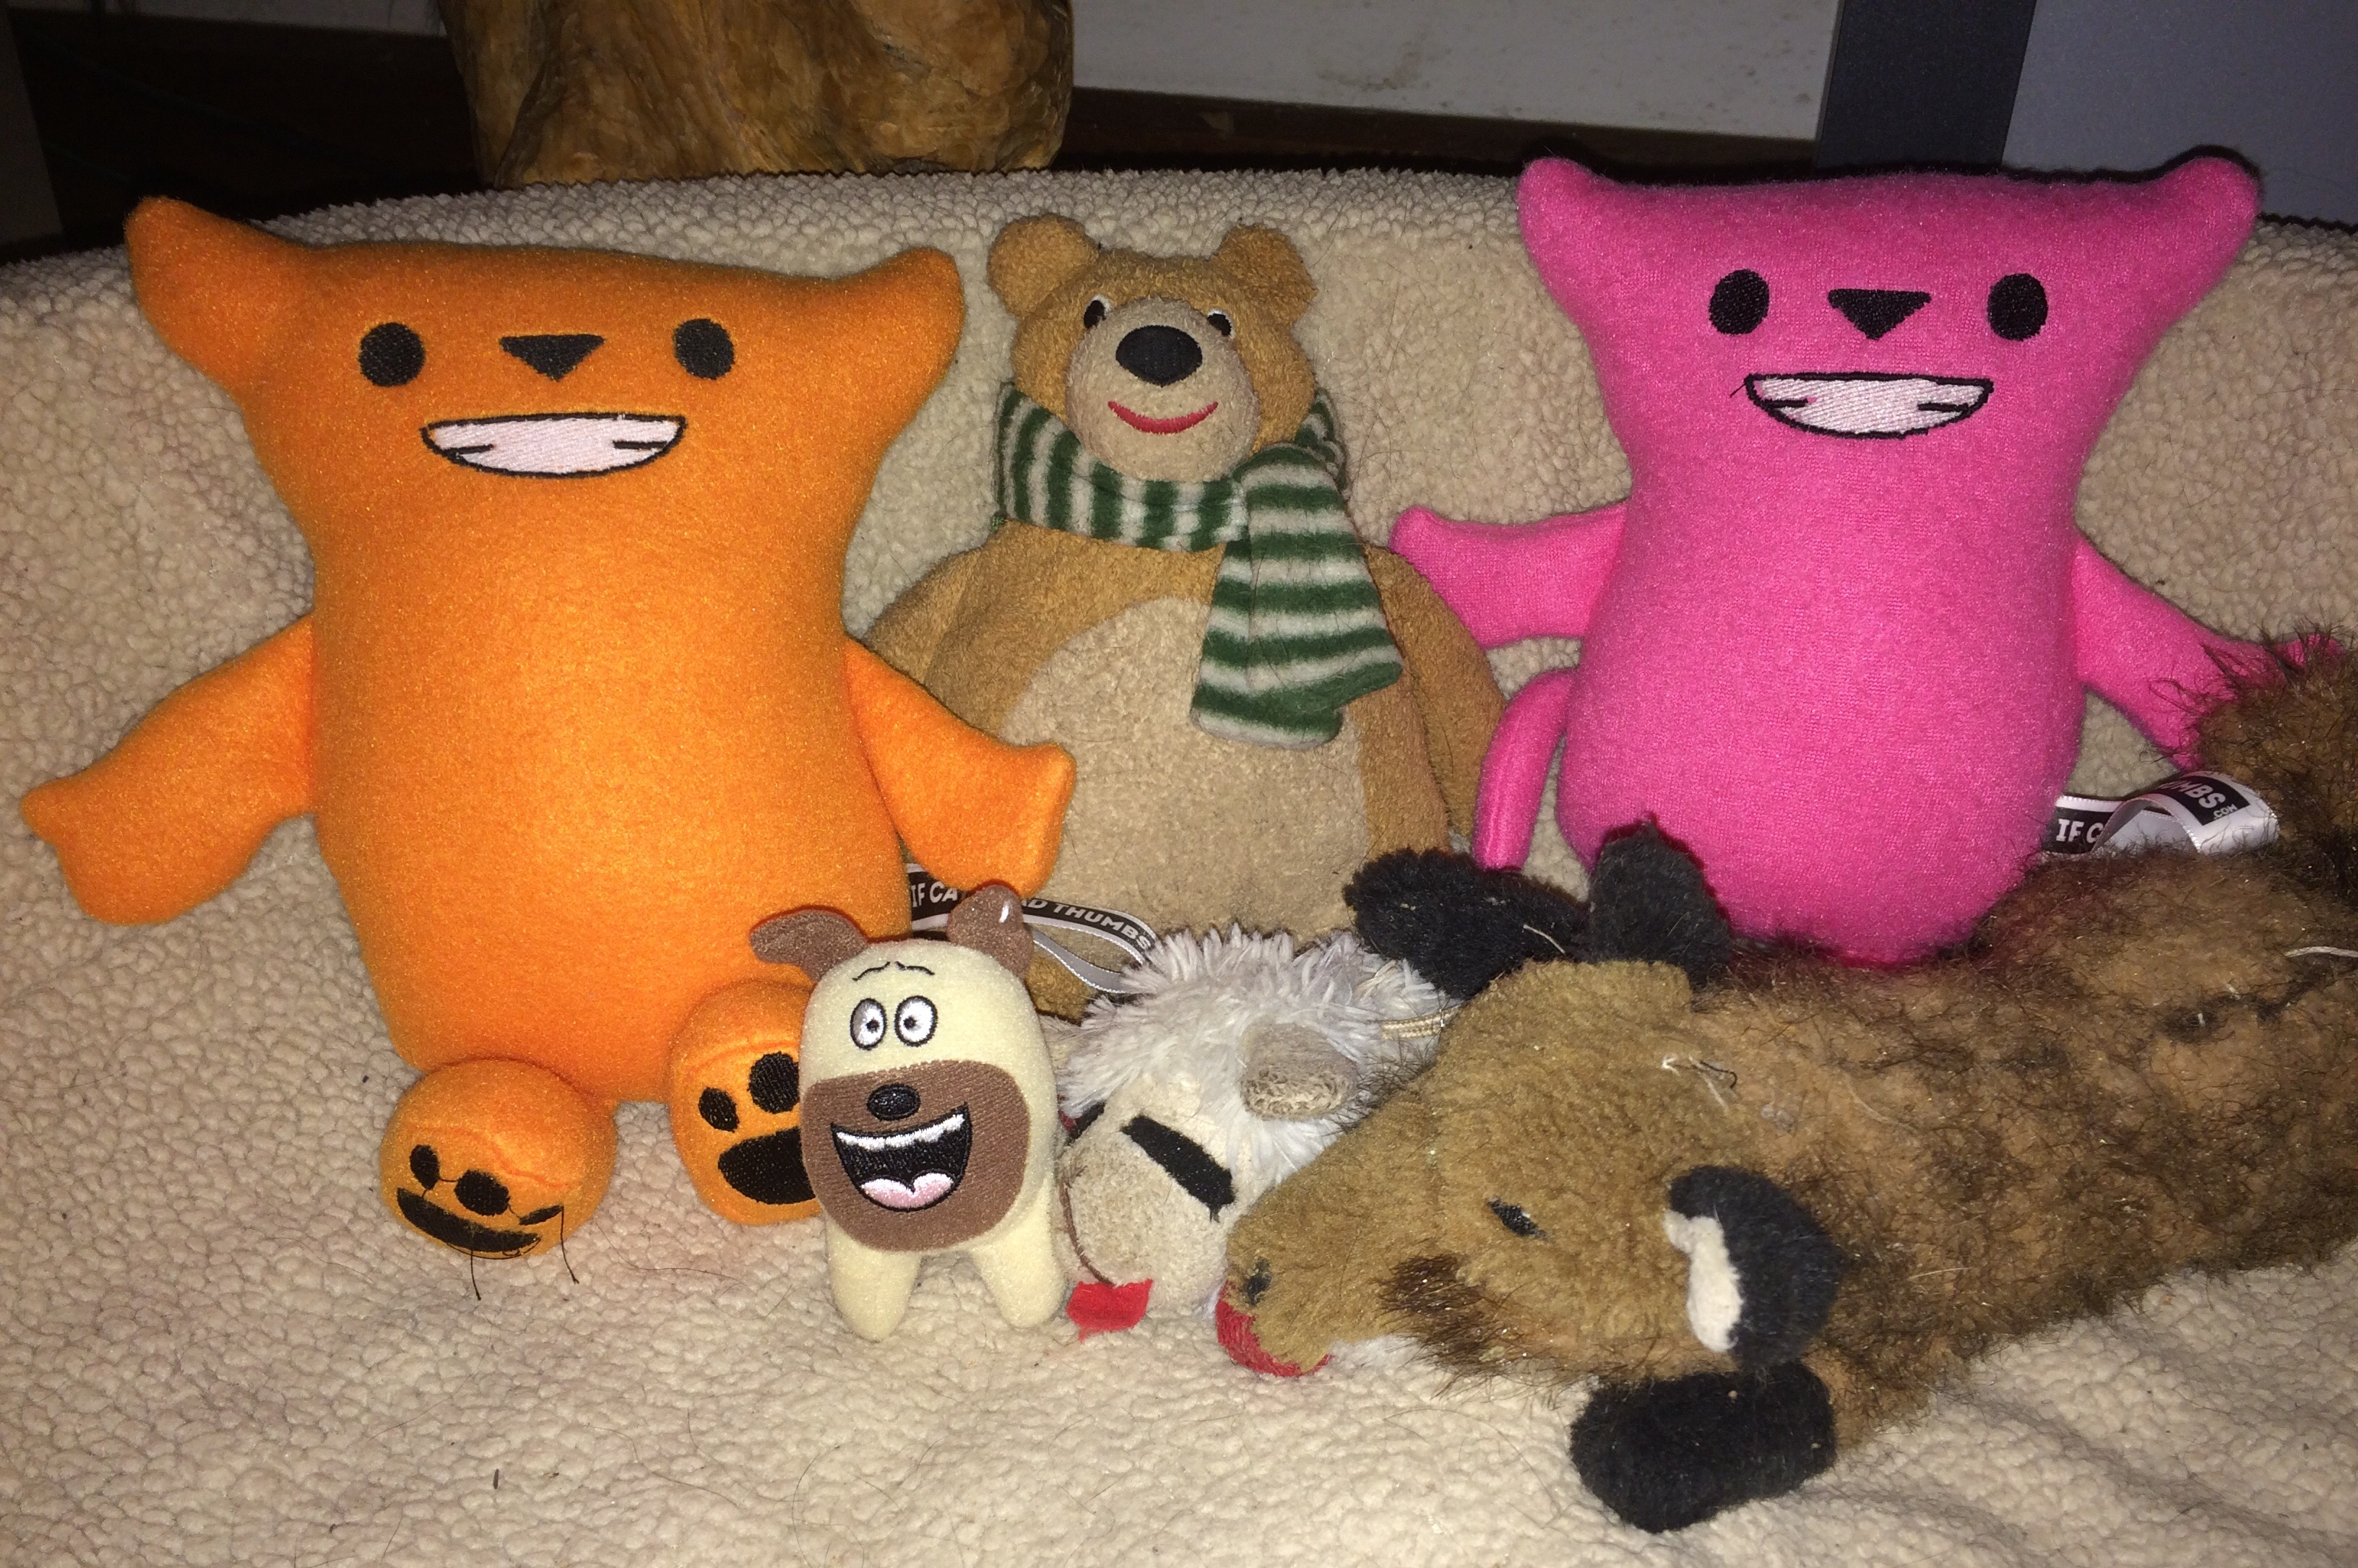 Benito and Pinkie with friends